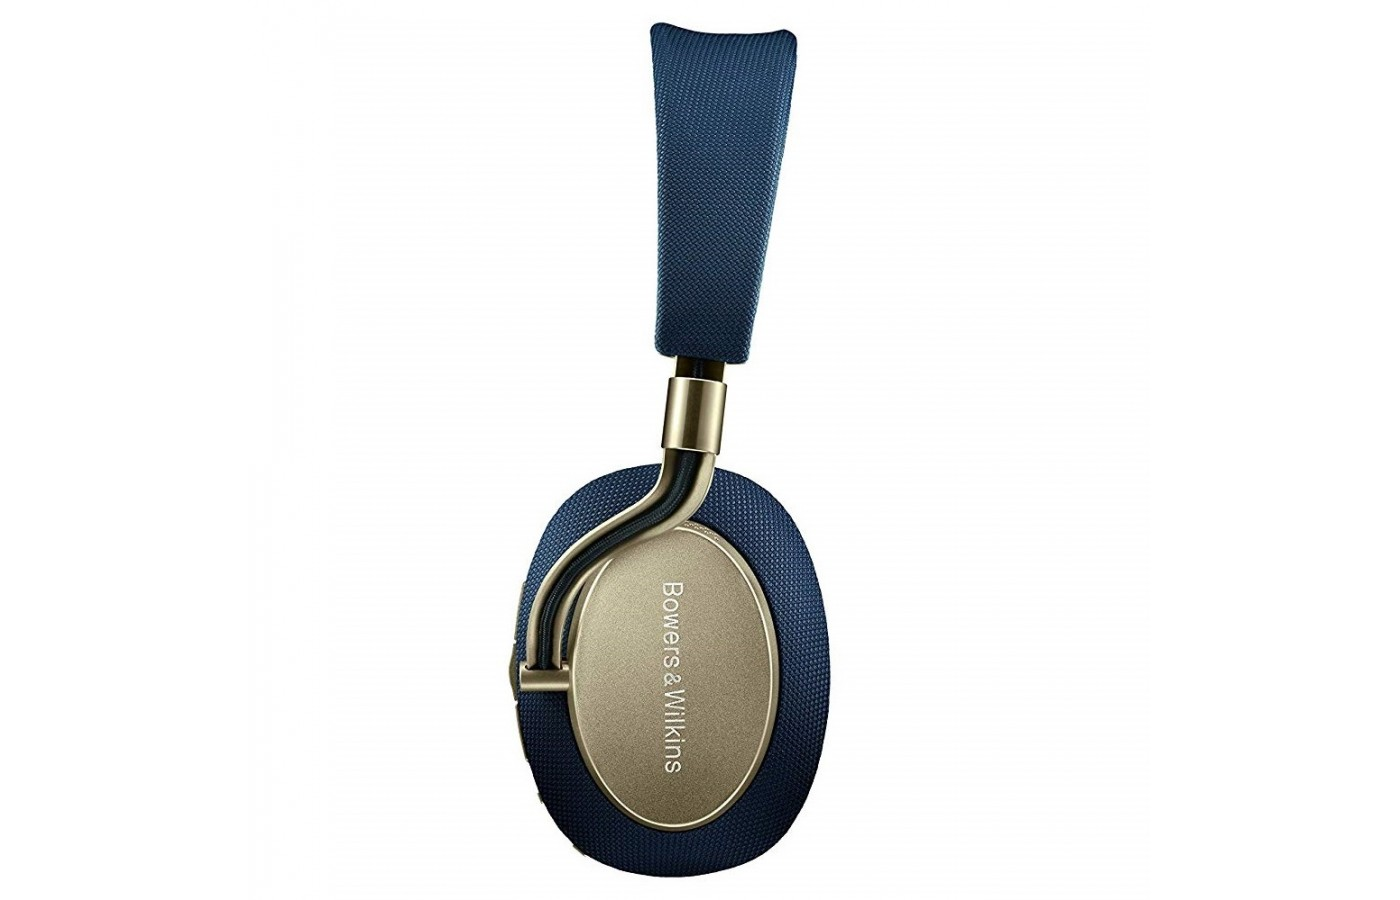 The Bowers & Wilkins PX offers an incredibly attractive design and is made of quality materials.